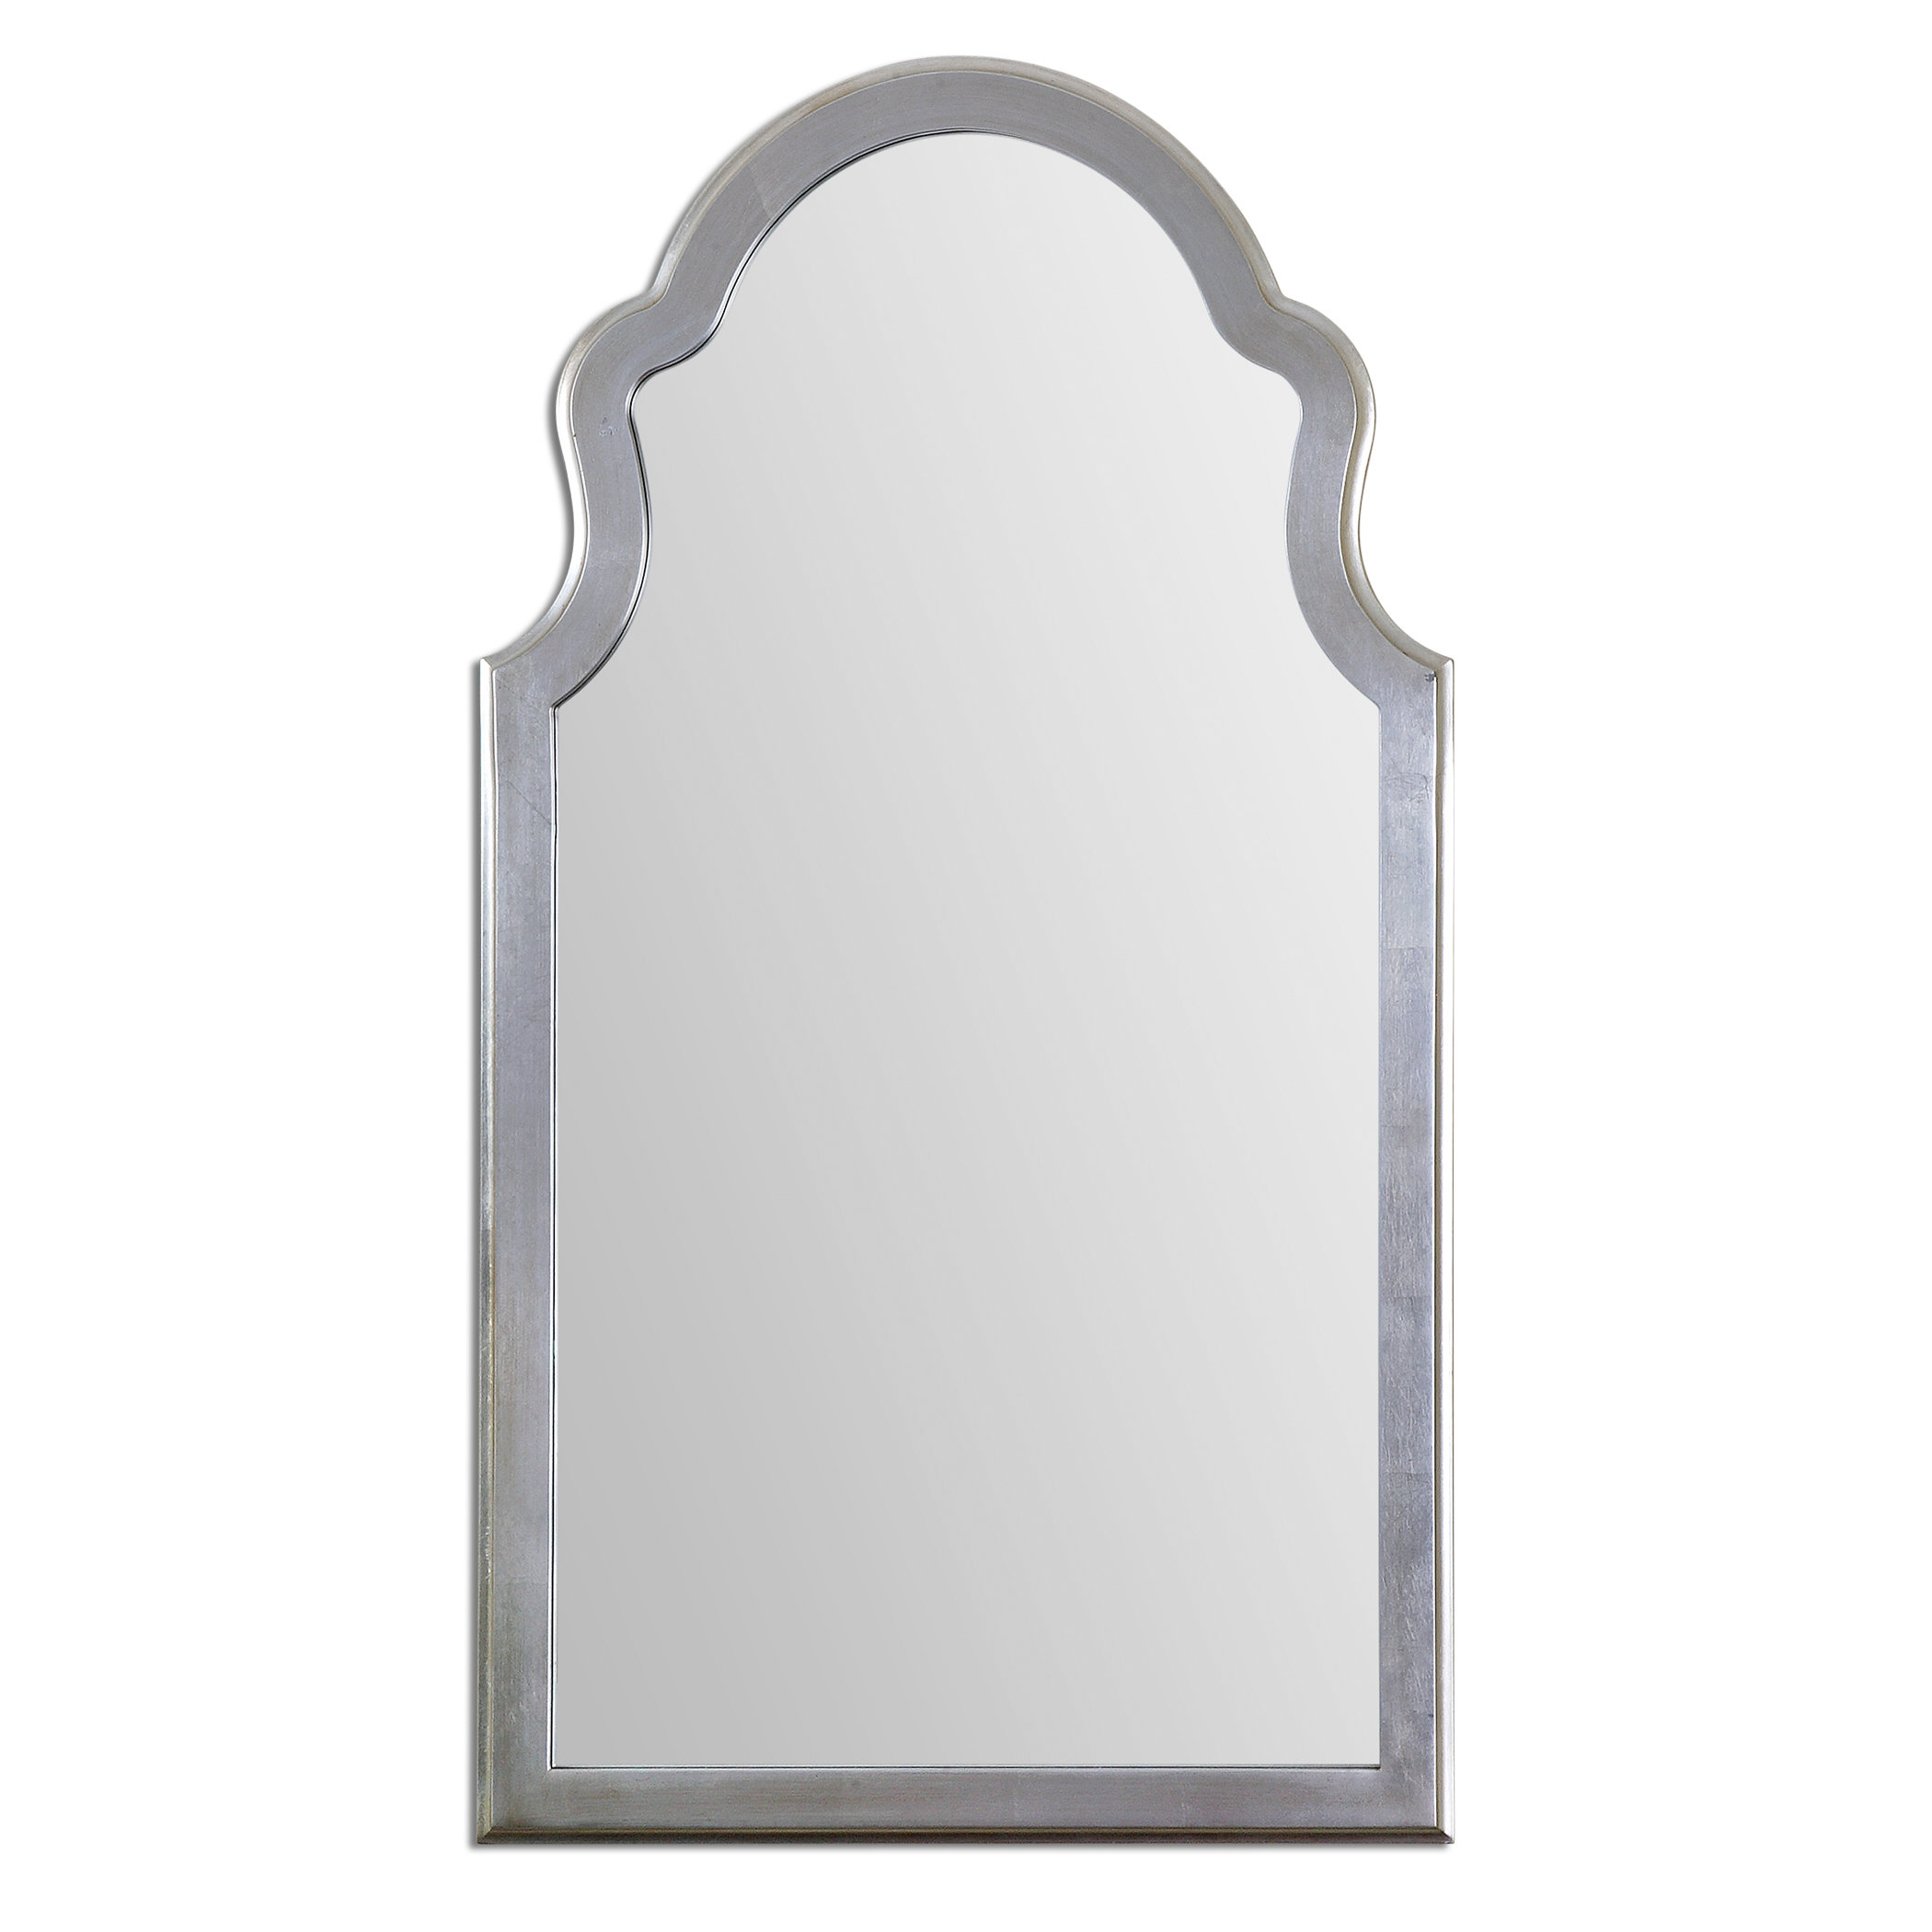 Farmhouse & Rustic Arch / Crowned Top Wall & Accent Mirrors Intended For Ekaterina Arch/crowned Top Wall Mirrors (View 11 of 30)